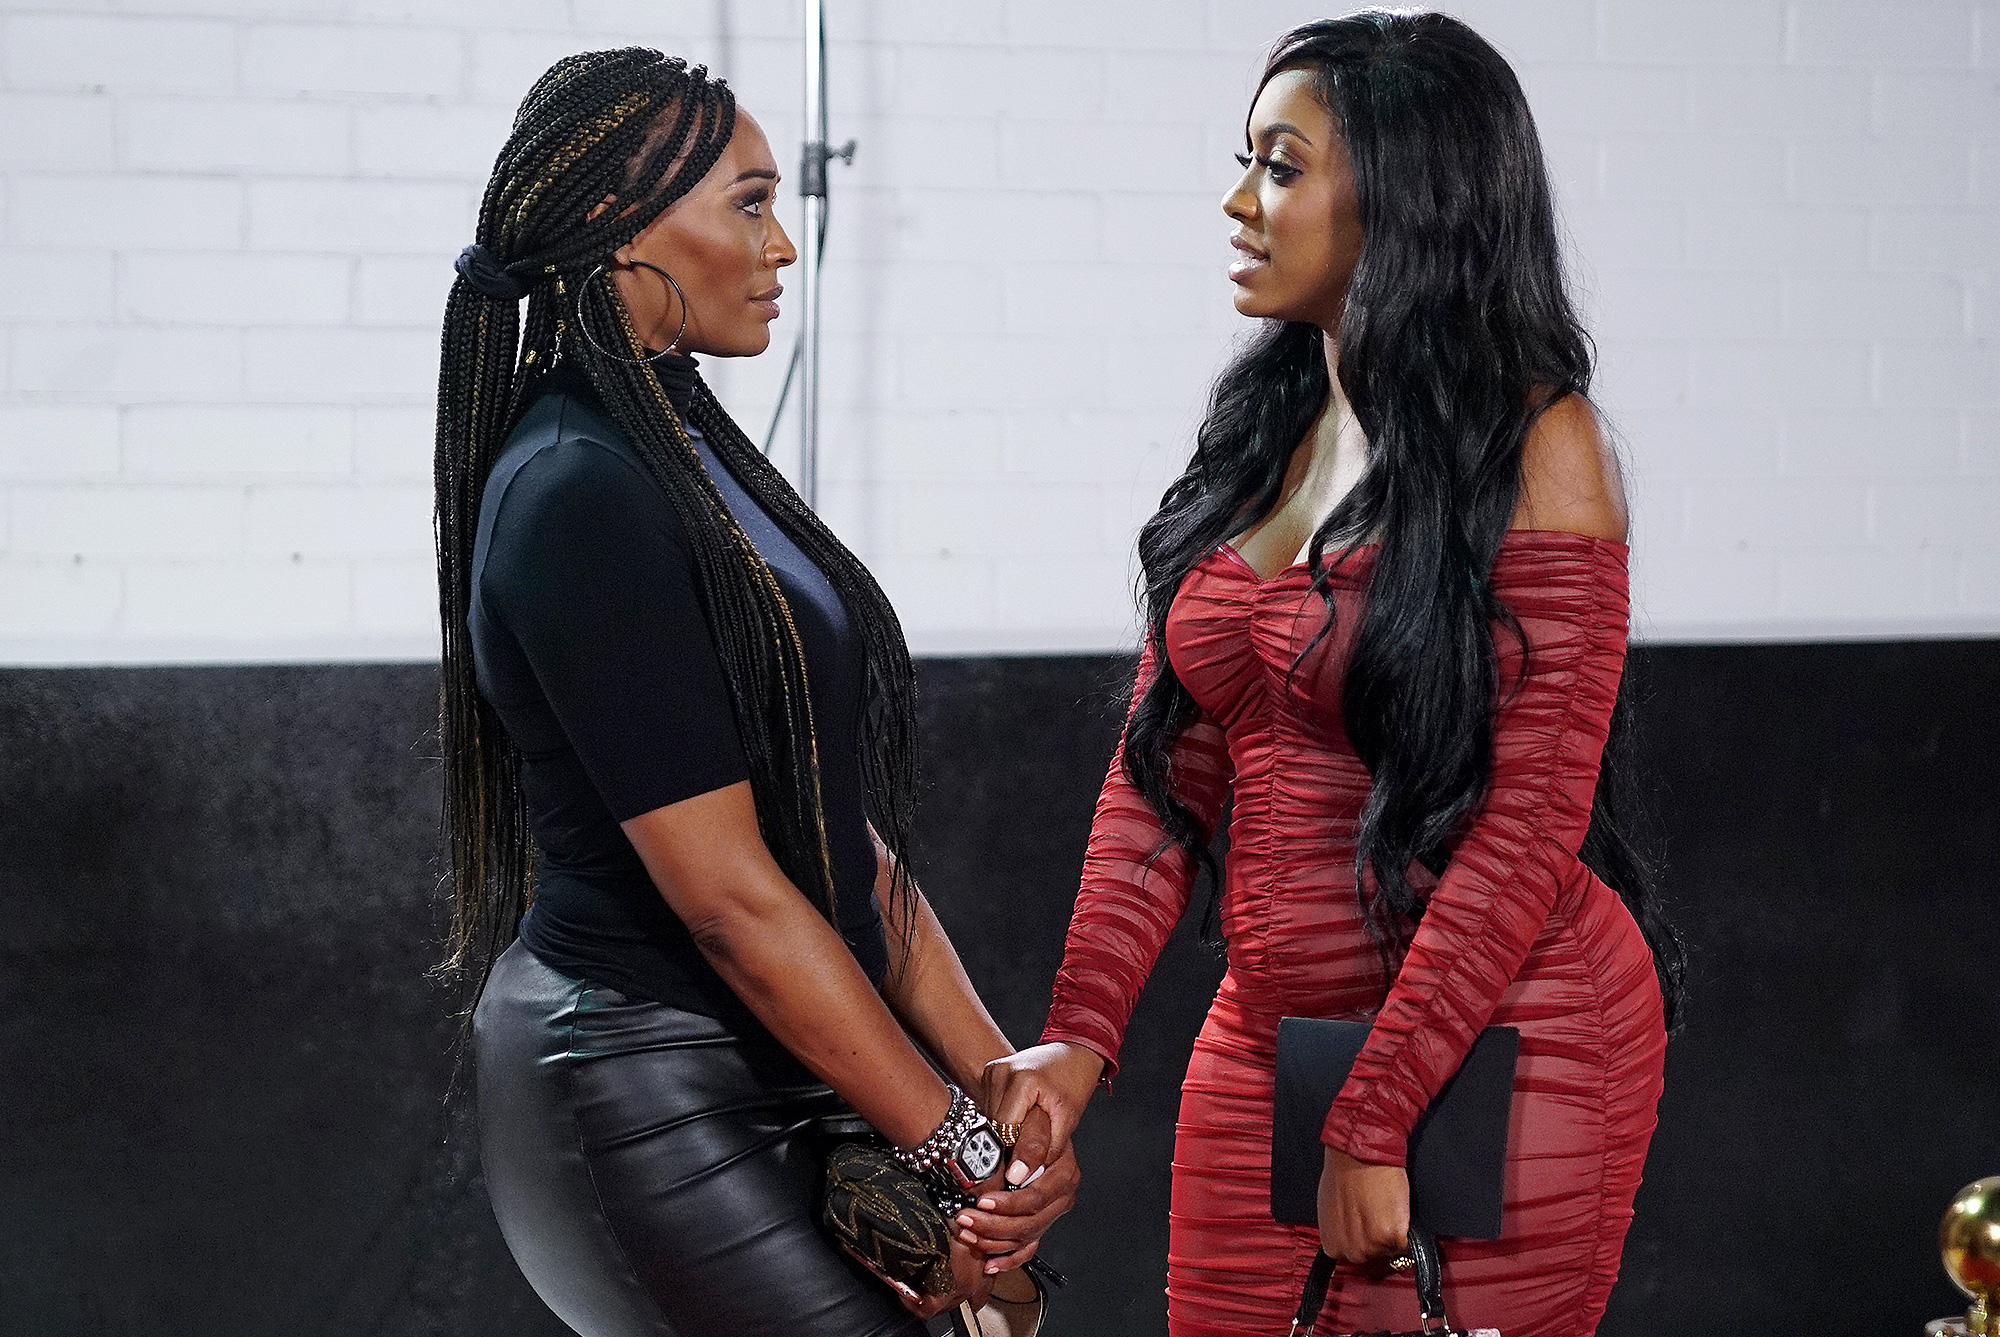 Porsha Williams' Latest Photo With Cynthia Bailey Has Some People Criticizing Them For Teaming Up To Hate NeNe Leakes